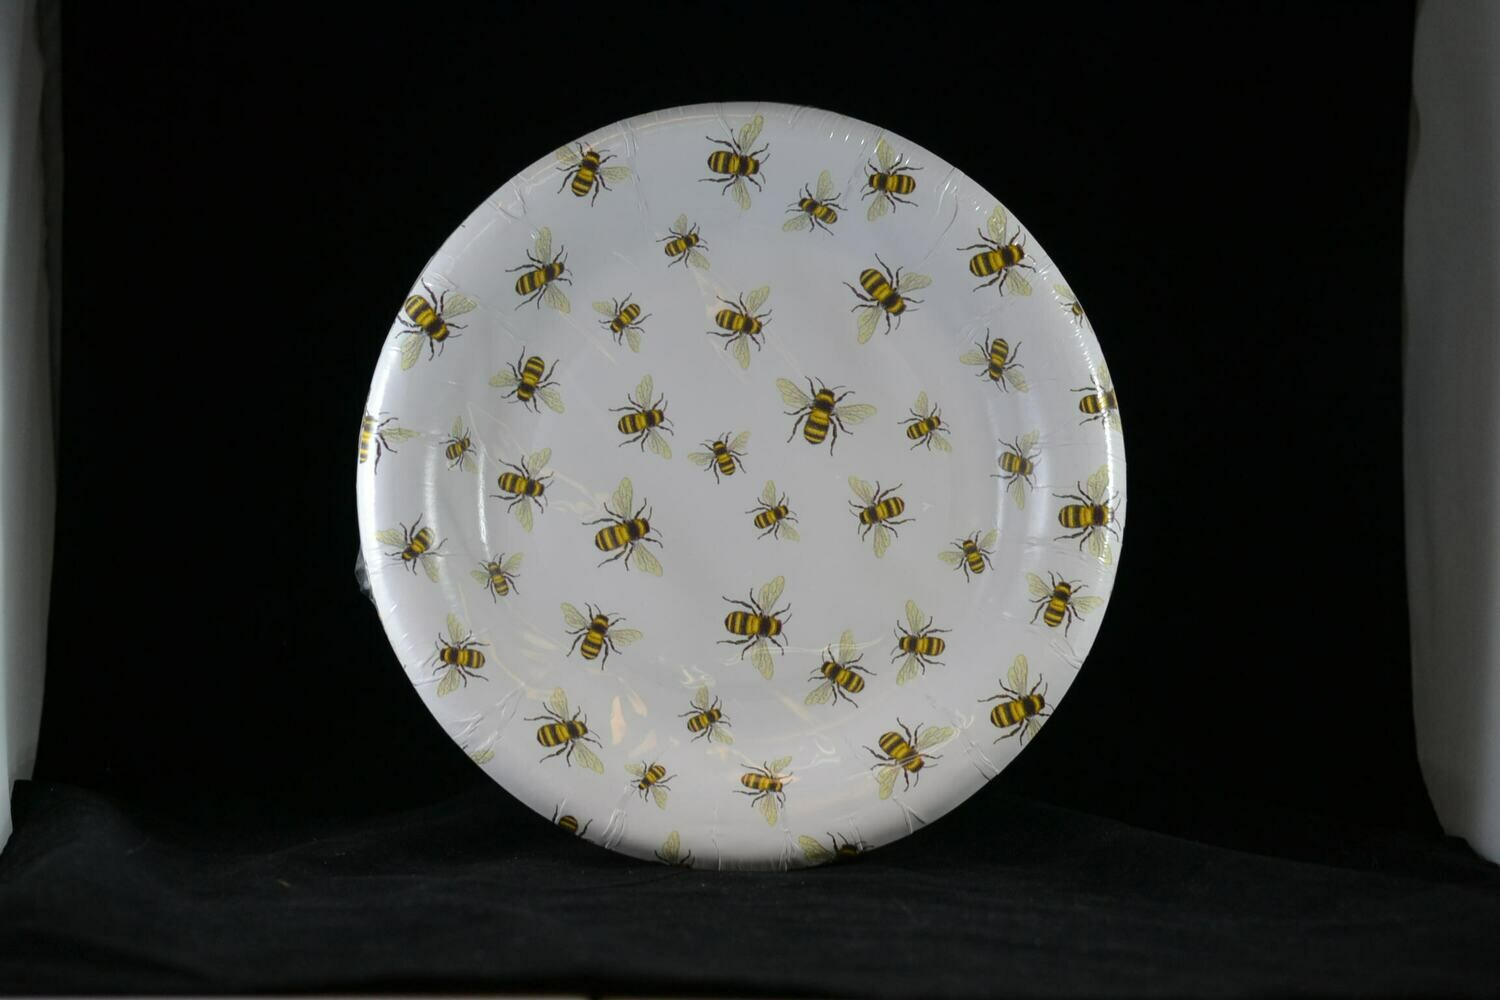 8 Inch Plate Save The Bees